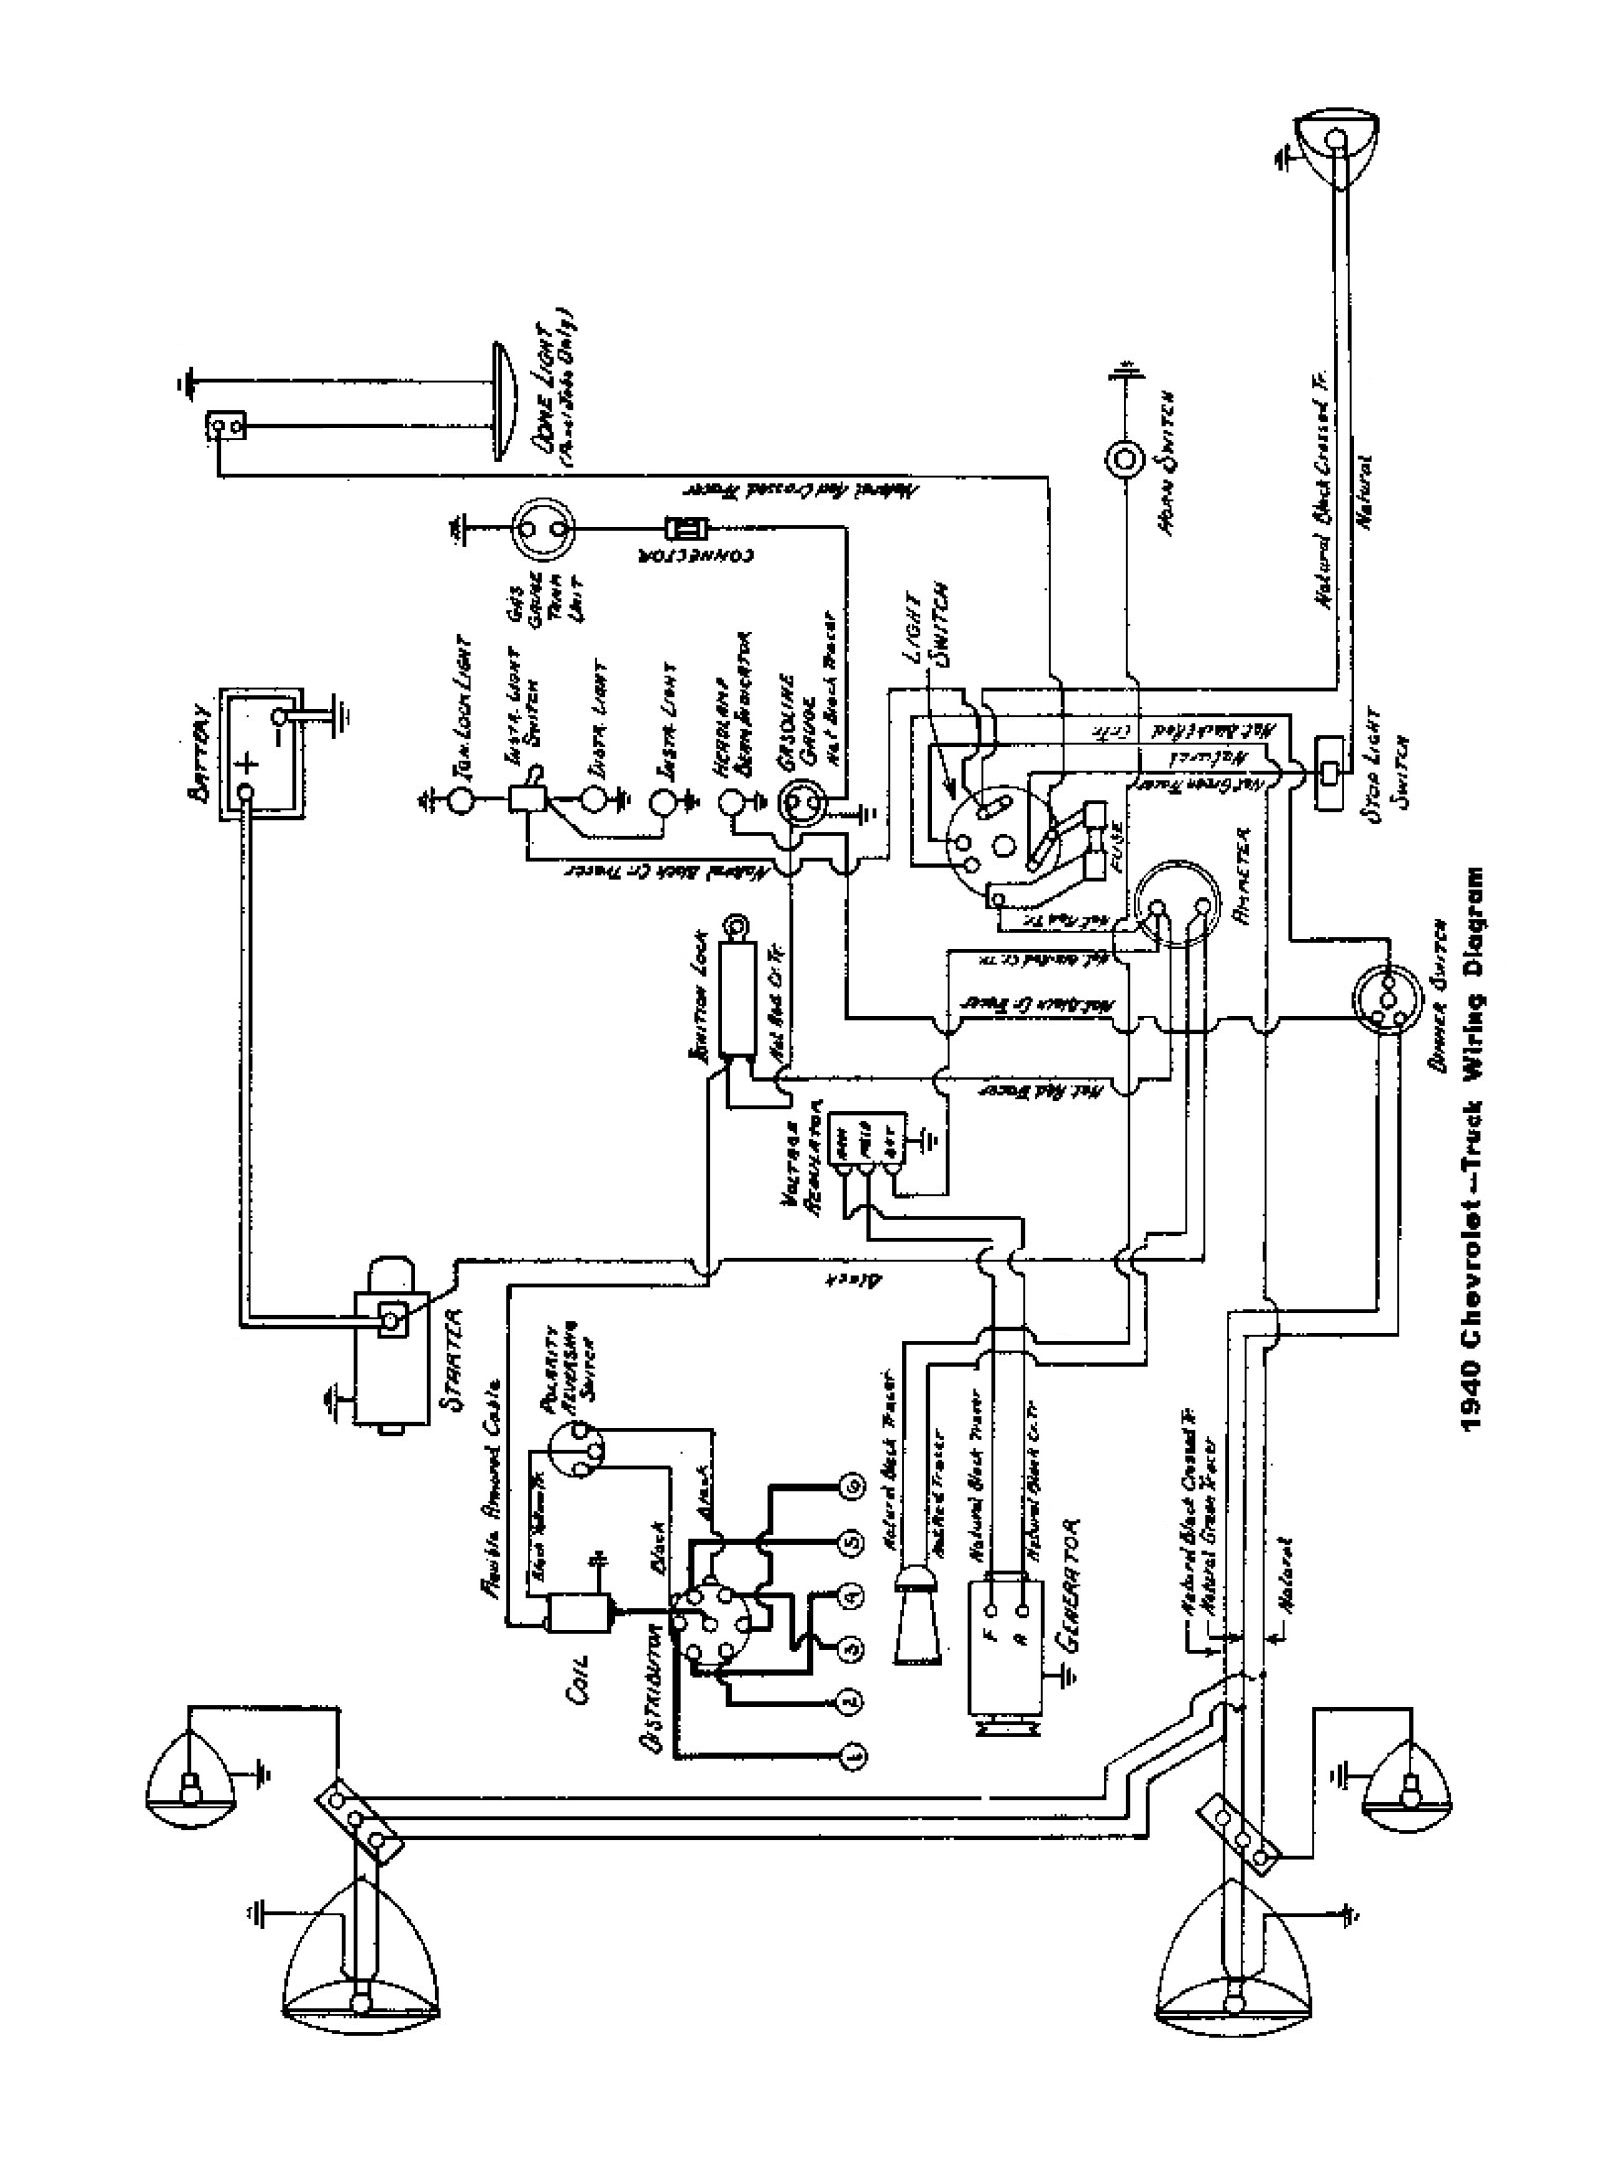 c21d3e7 1953 chevy truck under dash wiring diagram | wiring library  wiring library